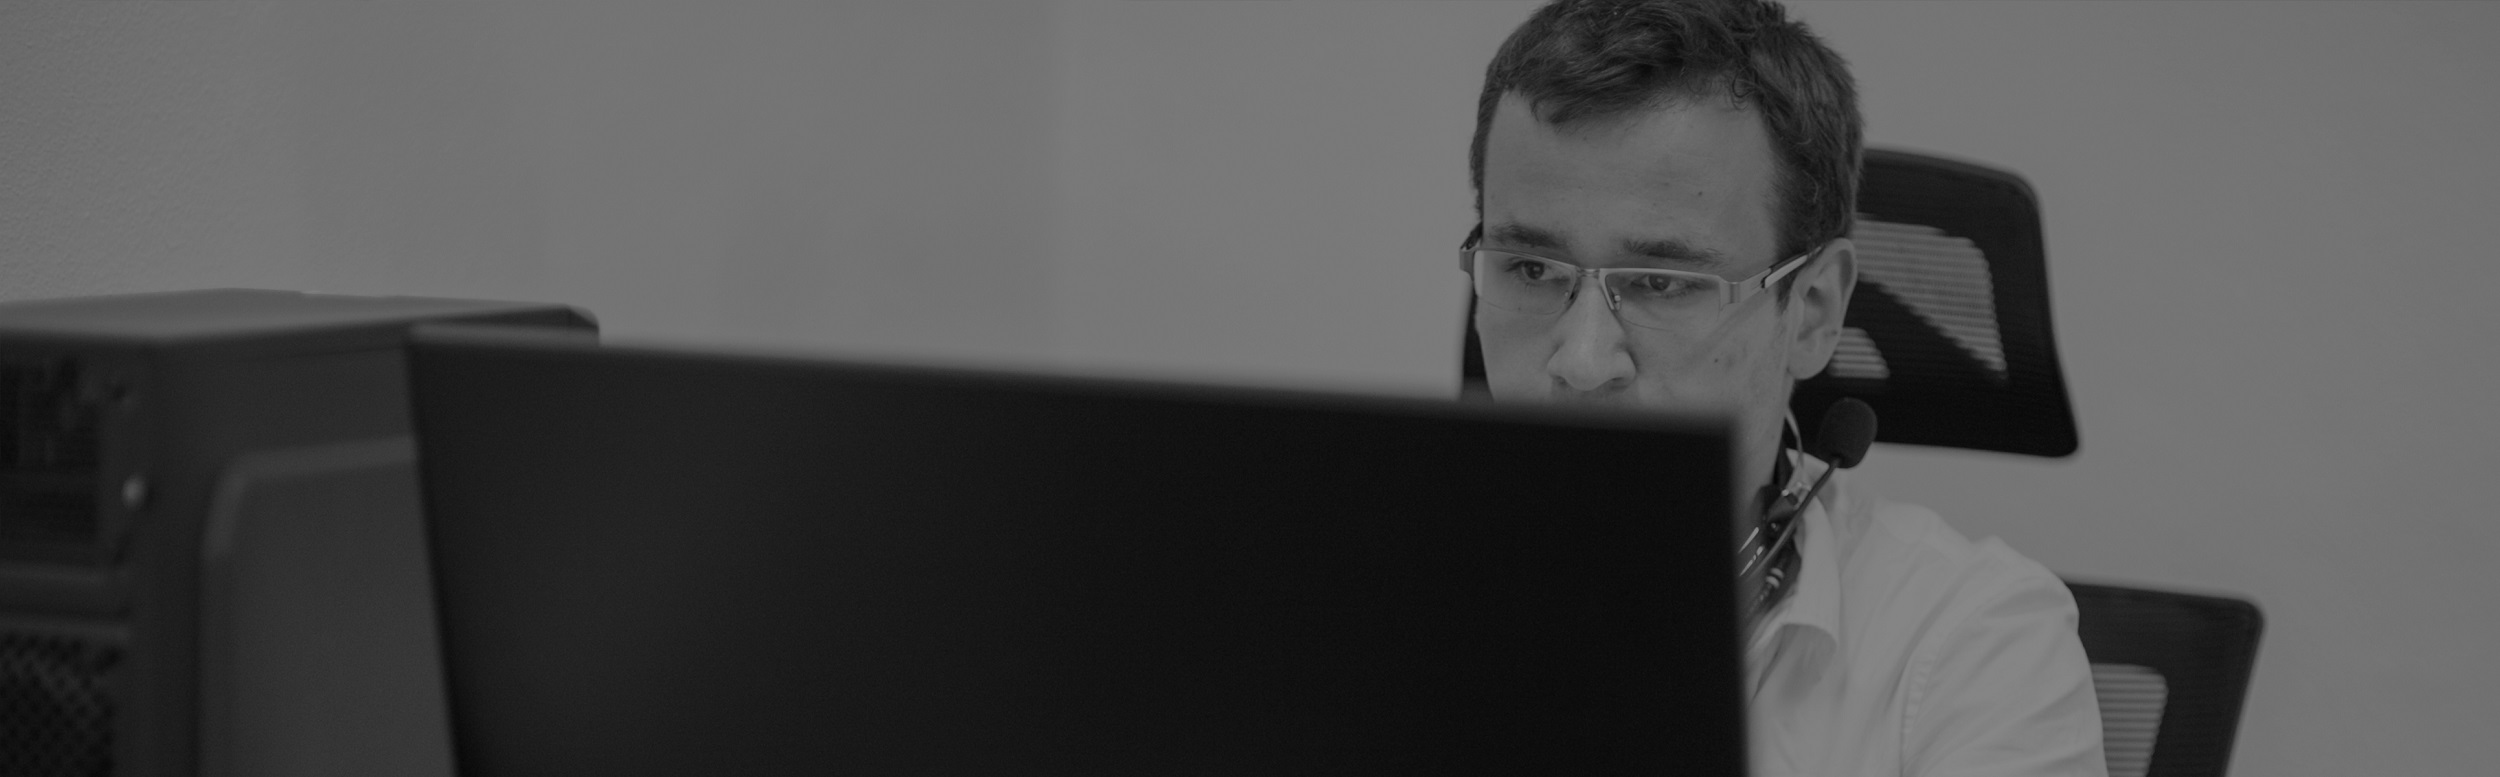 Man sitting behind the monitor and working